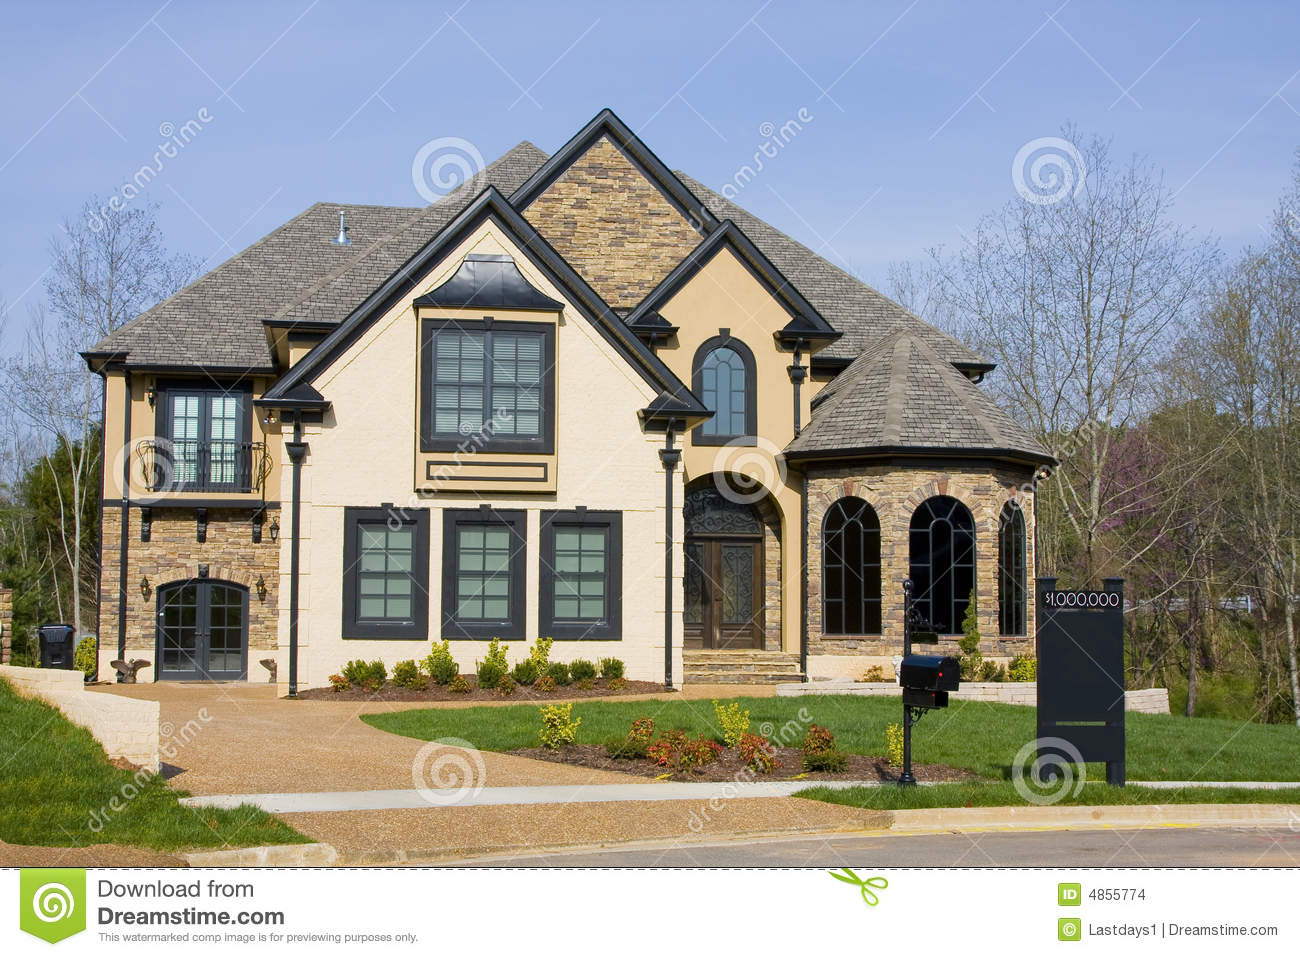 Luxury new homes for sale stock images image 4855774 for Luxury dream homes for sale